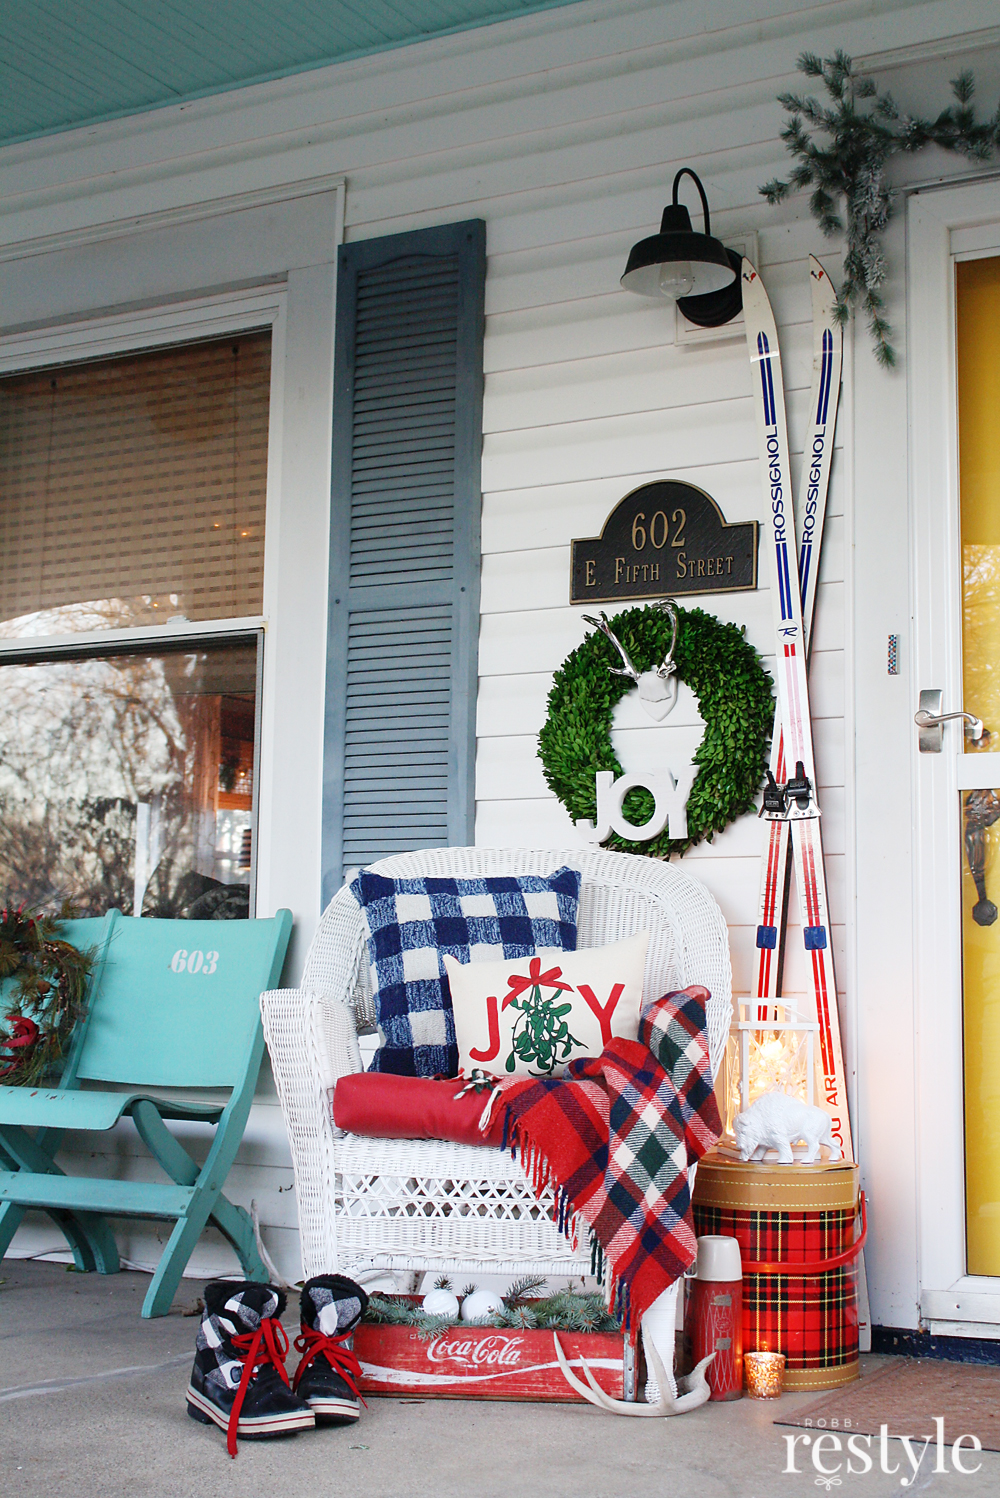 Eclectic Home Tour Christmas edition of Robb Restyle - love this porch filled with vintage finds including an old tartan thermos and a wooden soda crate